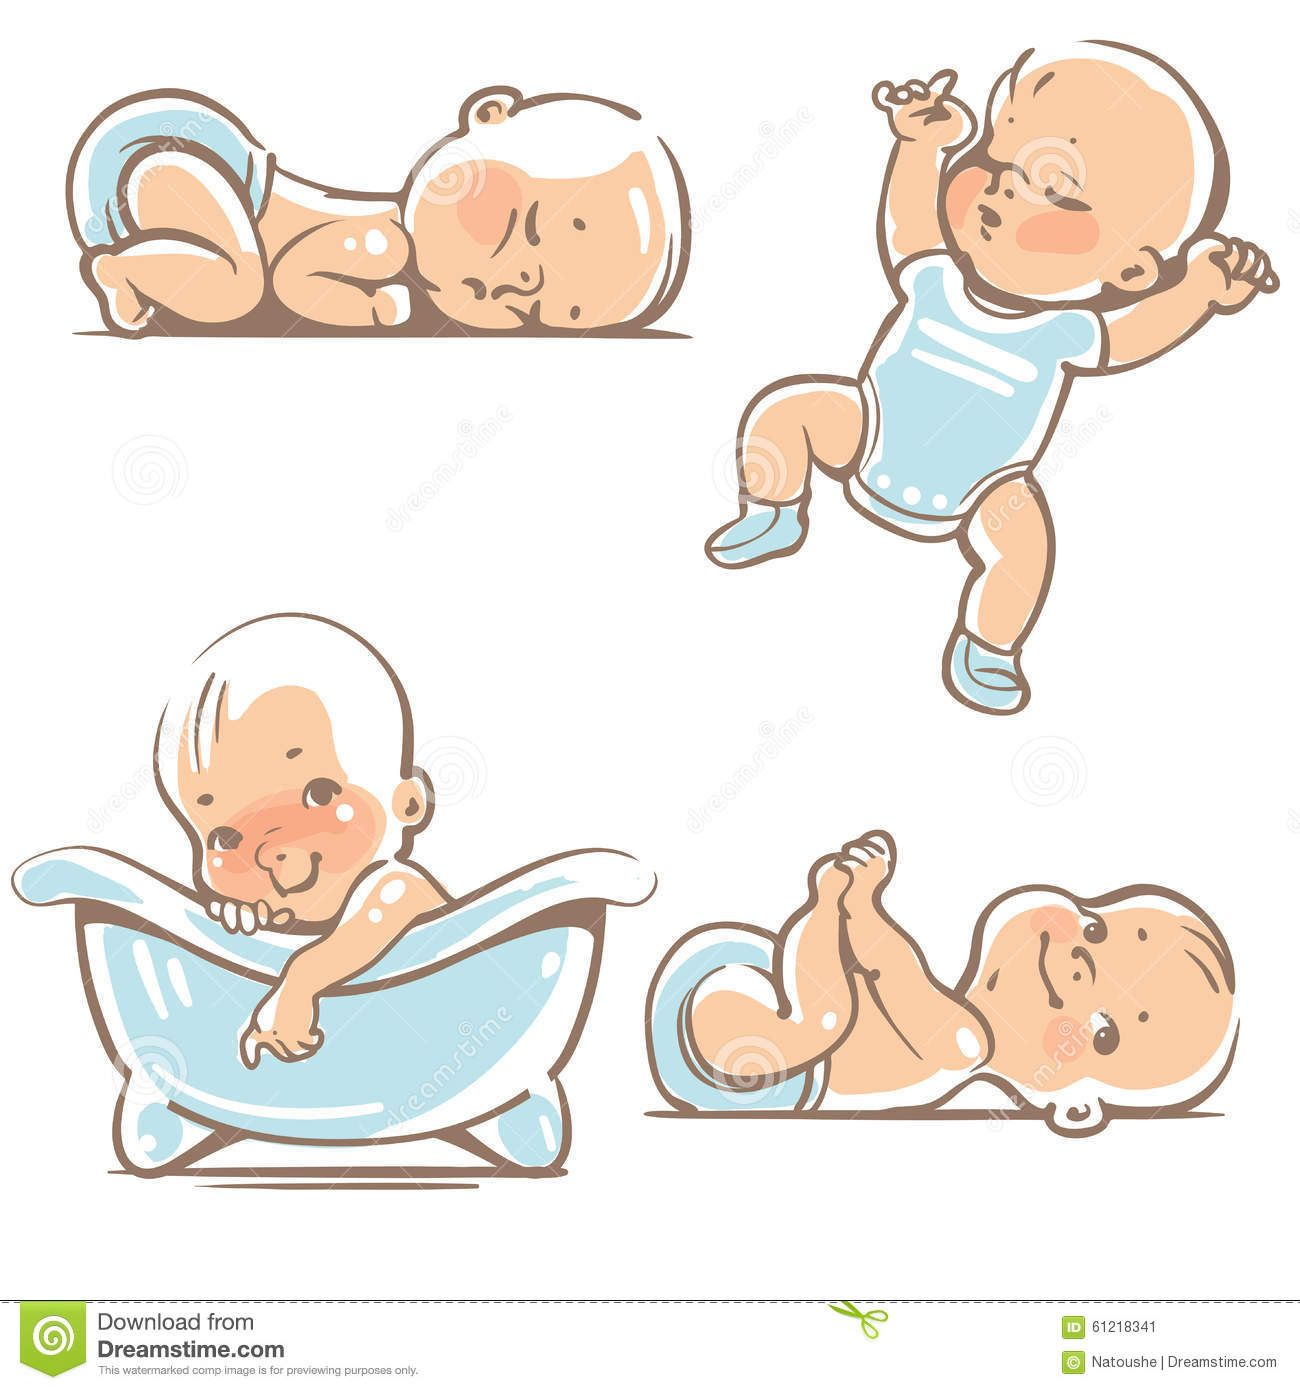 Cute Babies In Blue Clothes Stock Vector Illustration Of Cartoon Funny 61218341 Baby Cartoon Drawing Baby Cartoon Baby Drawing